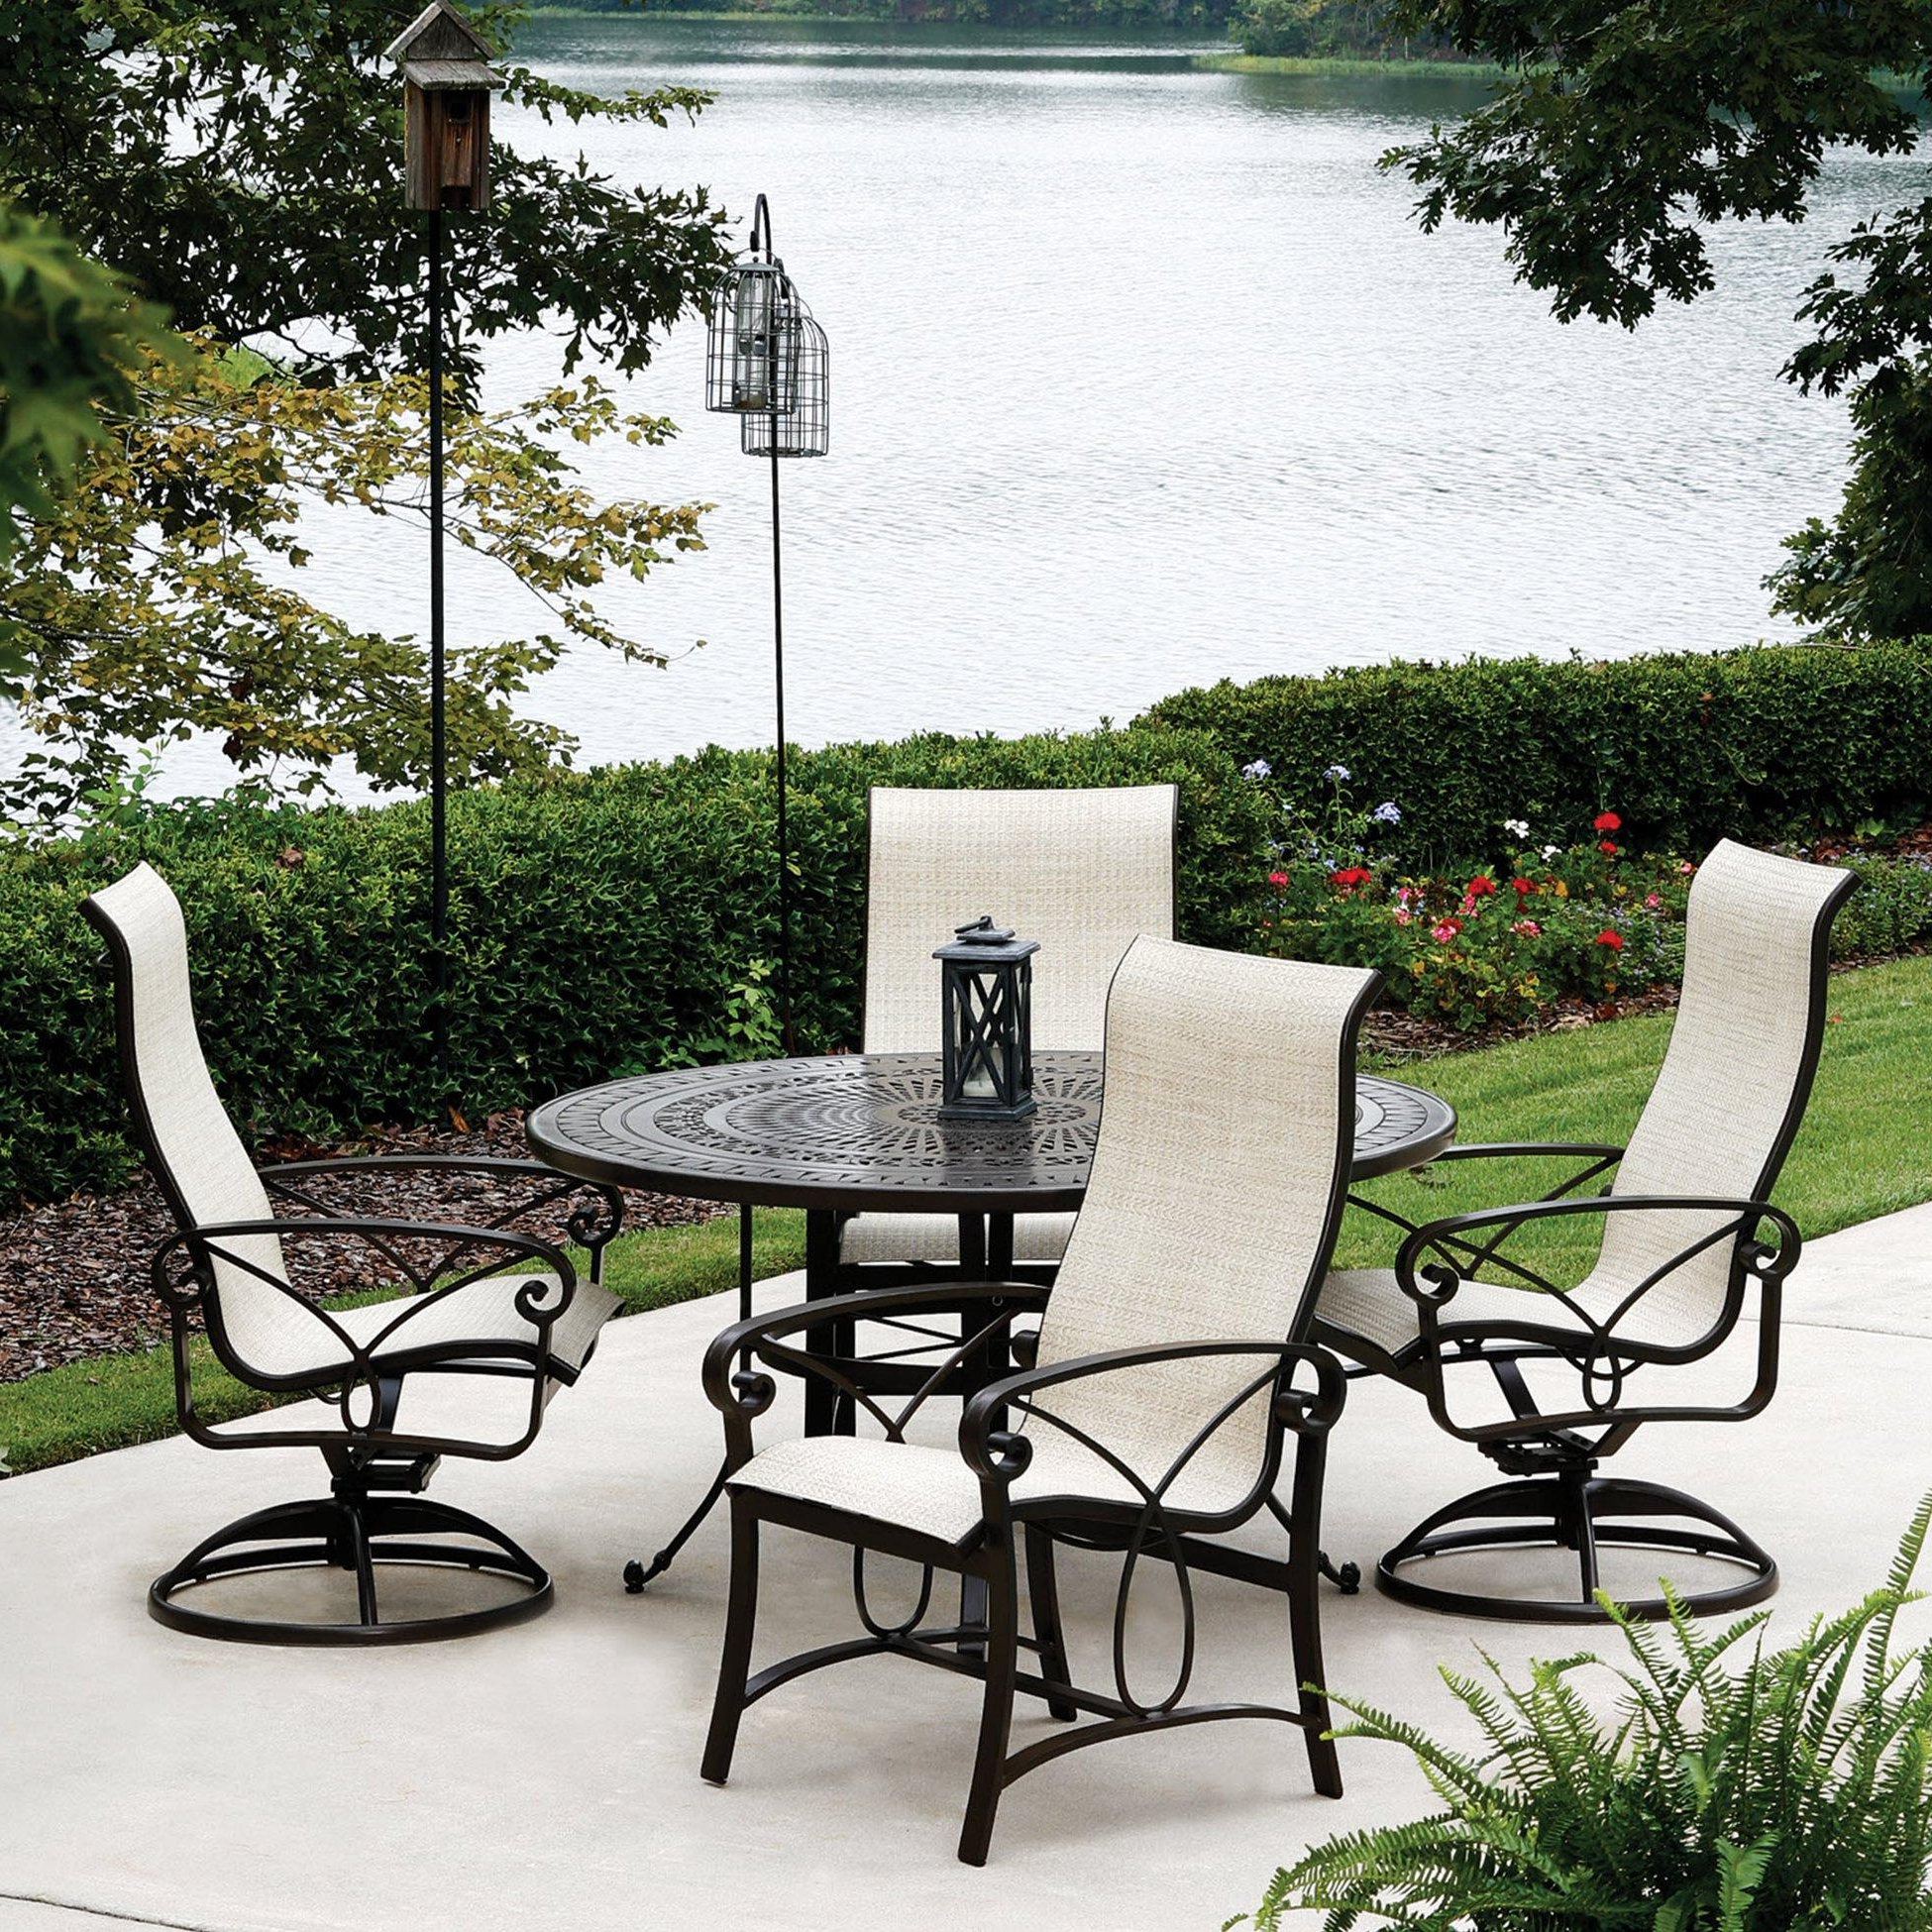 Winston Furniture Regarding Most Popular Canvas Patio Sling Chairs (View 20 of 25)